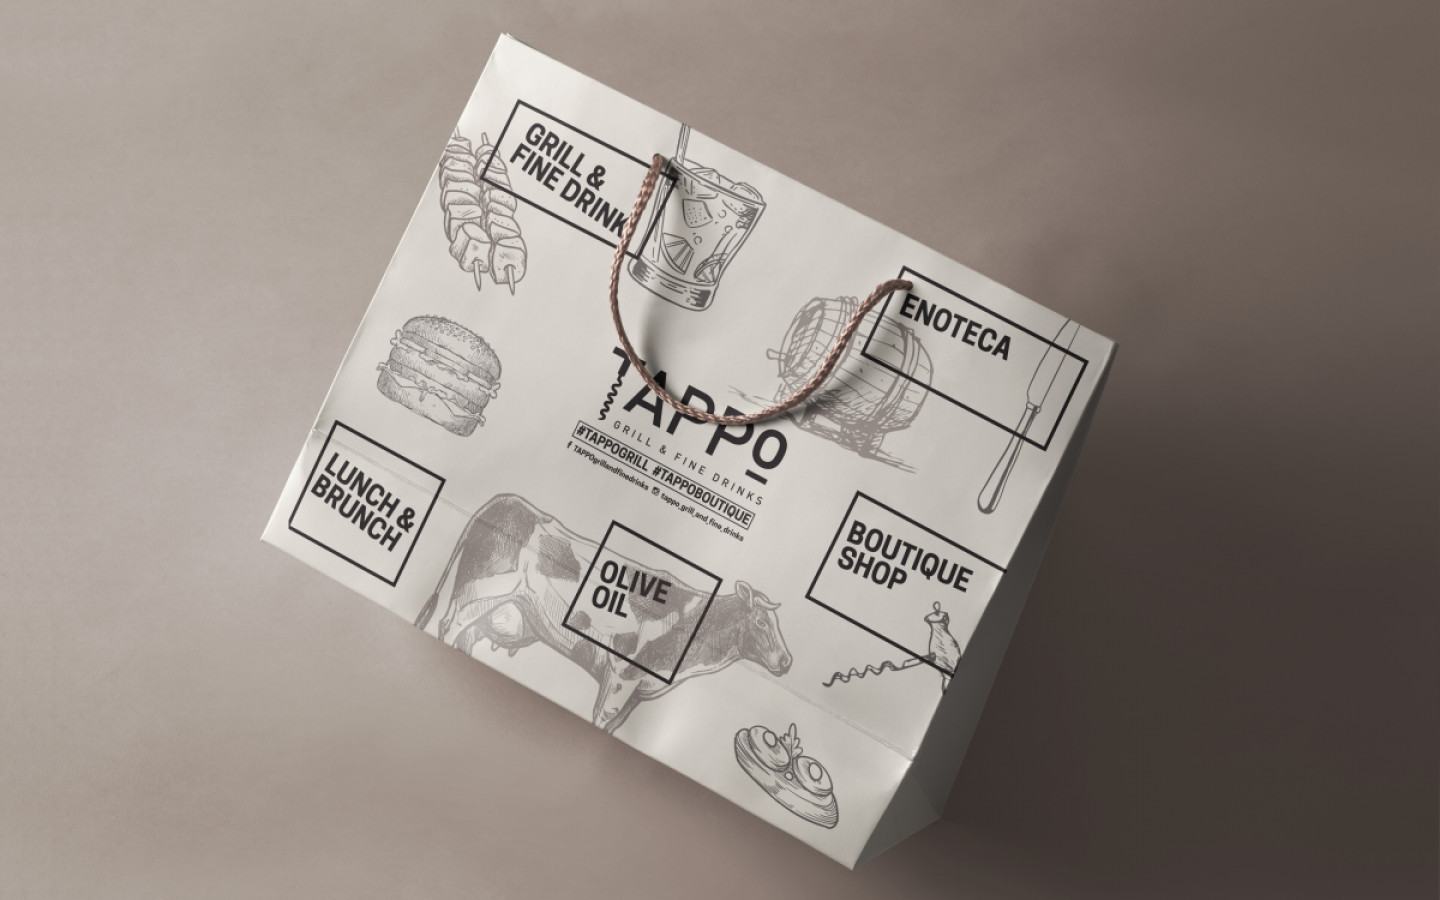 VISUAL IDENTITY - TAPPO GRILL & FINE DRINKS